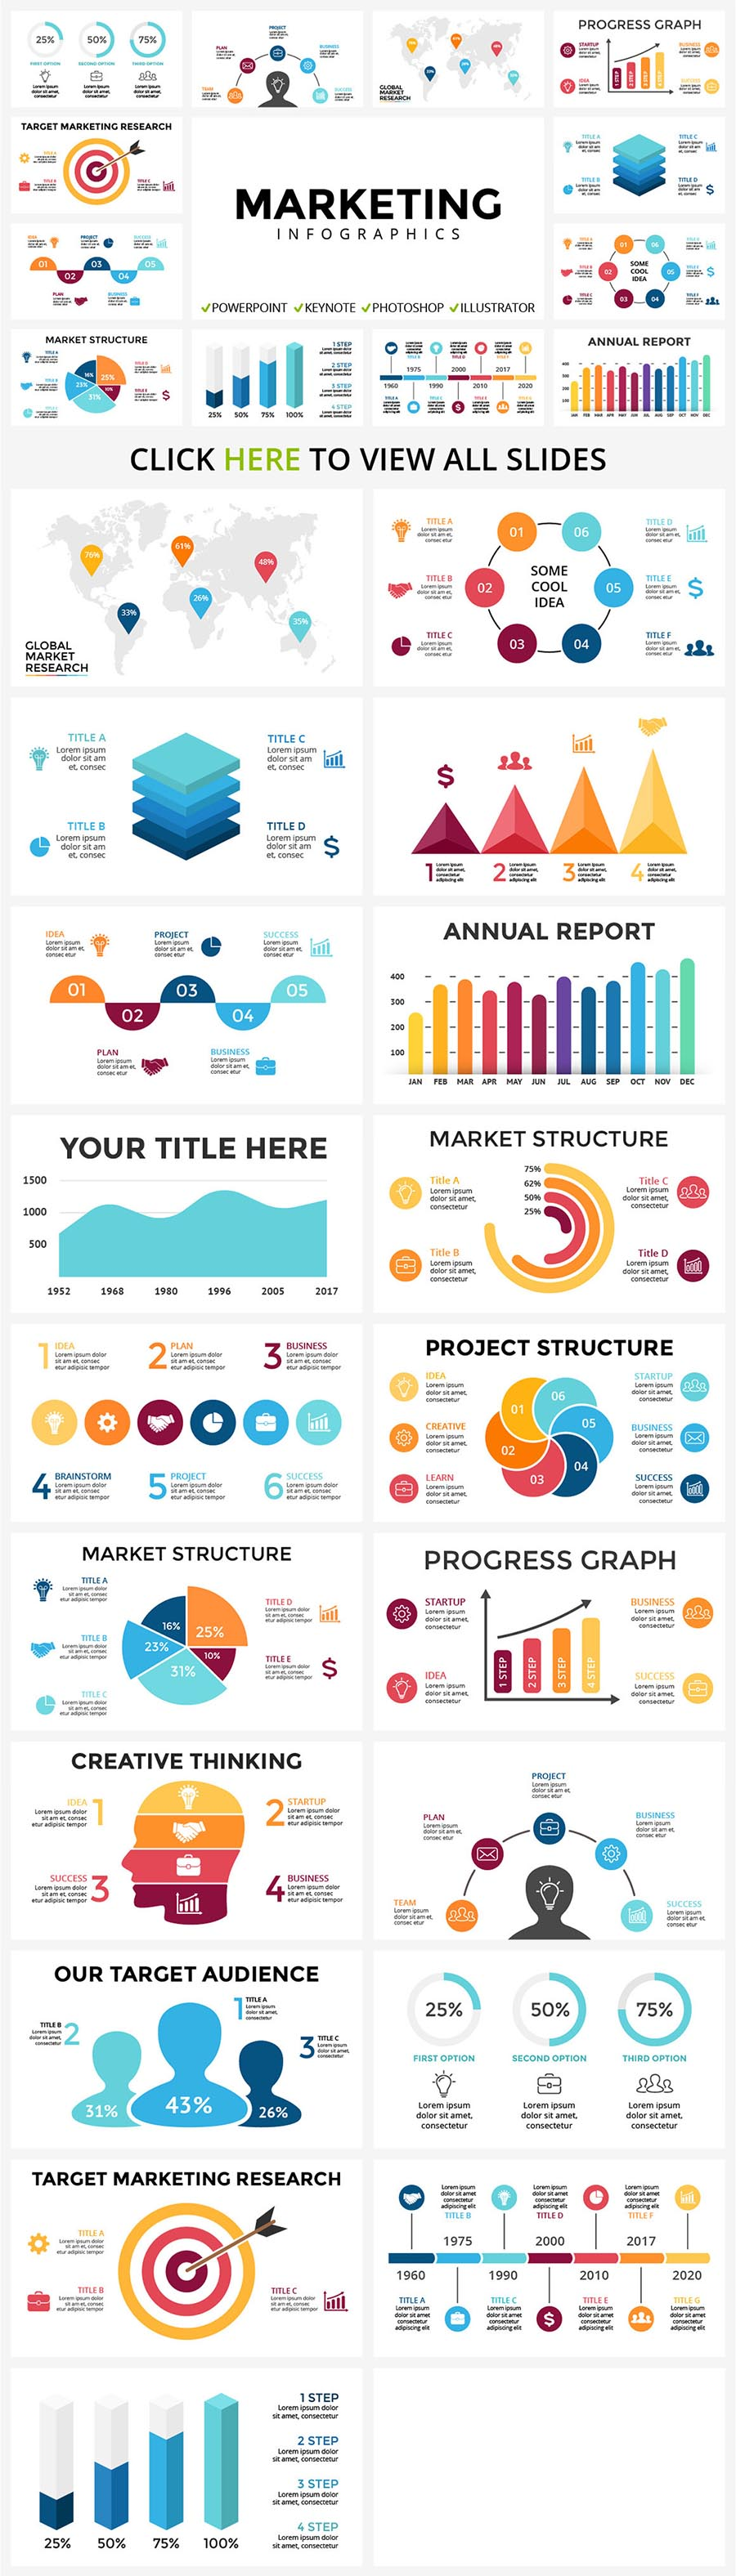 Cool Infographics in 2020. Best Infographics Bundle: 1500 items - $29 - 05 MARKETING